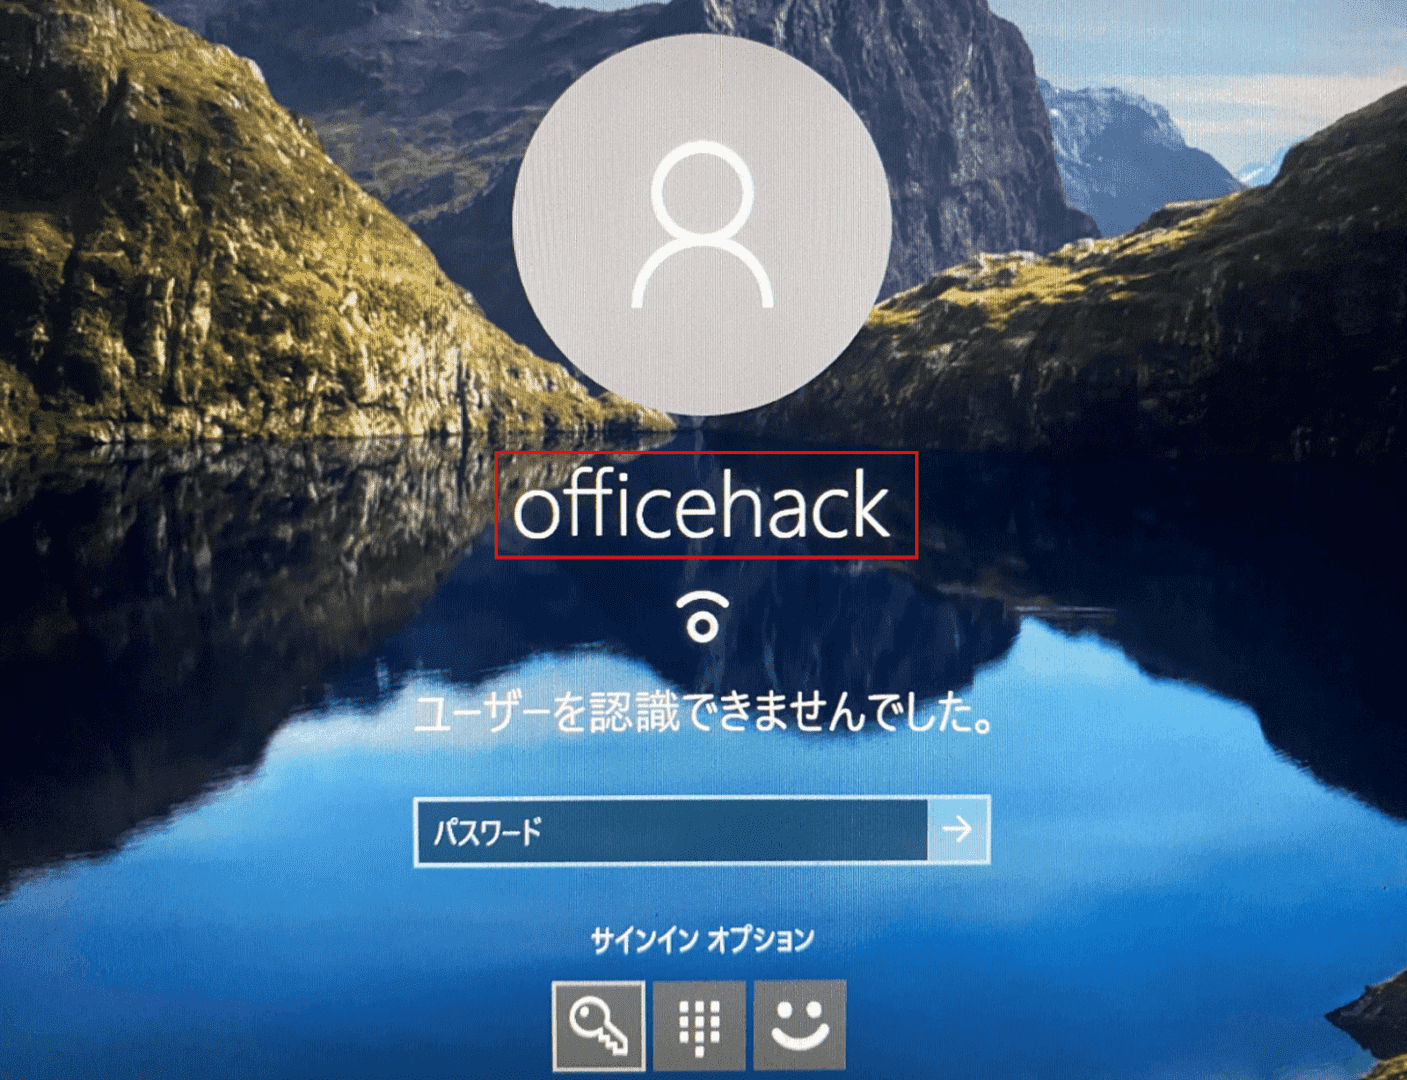 officehack